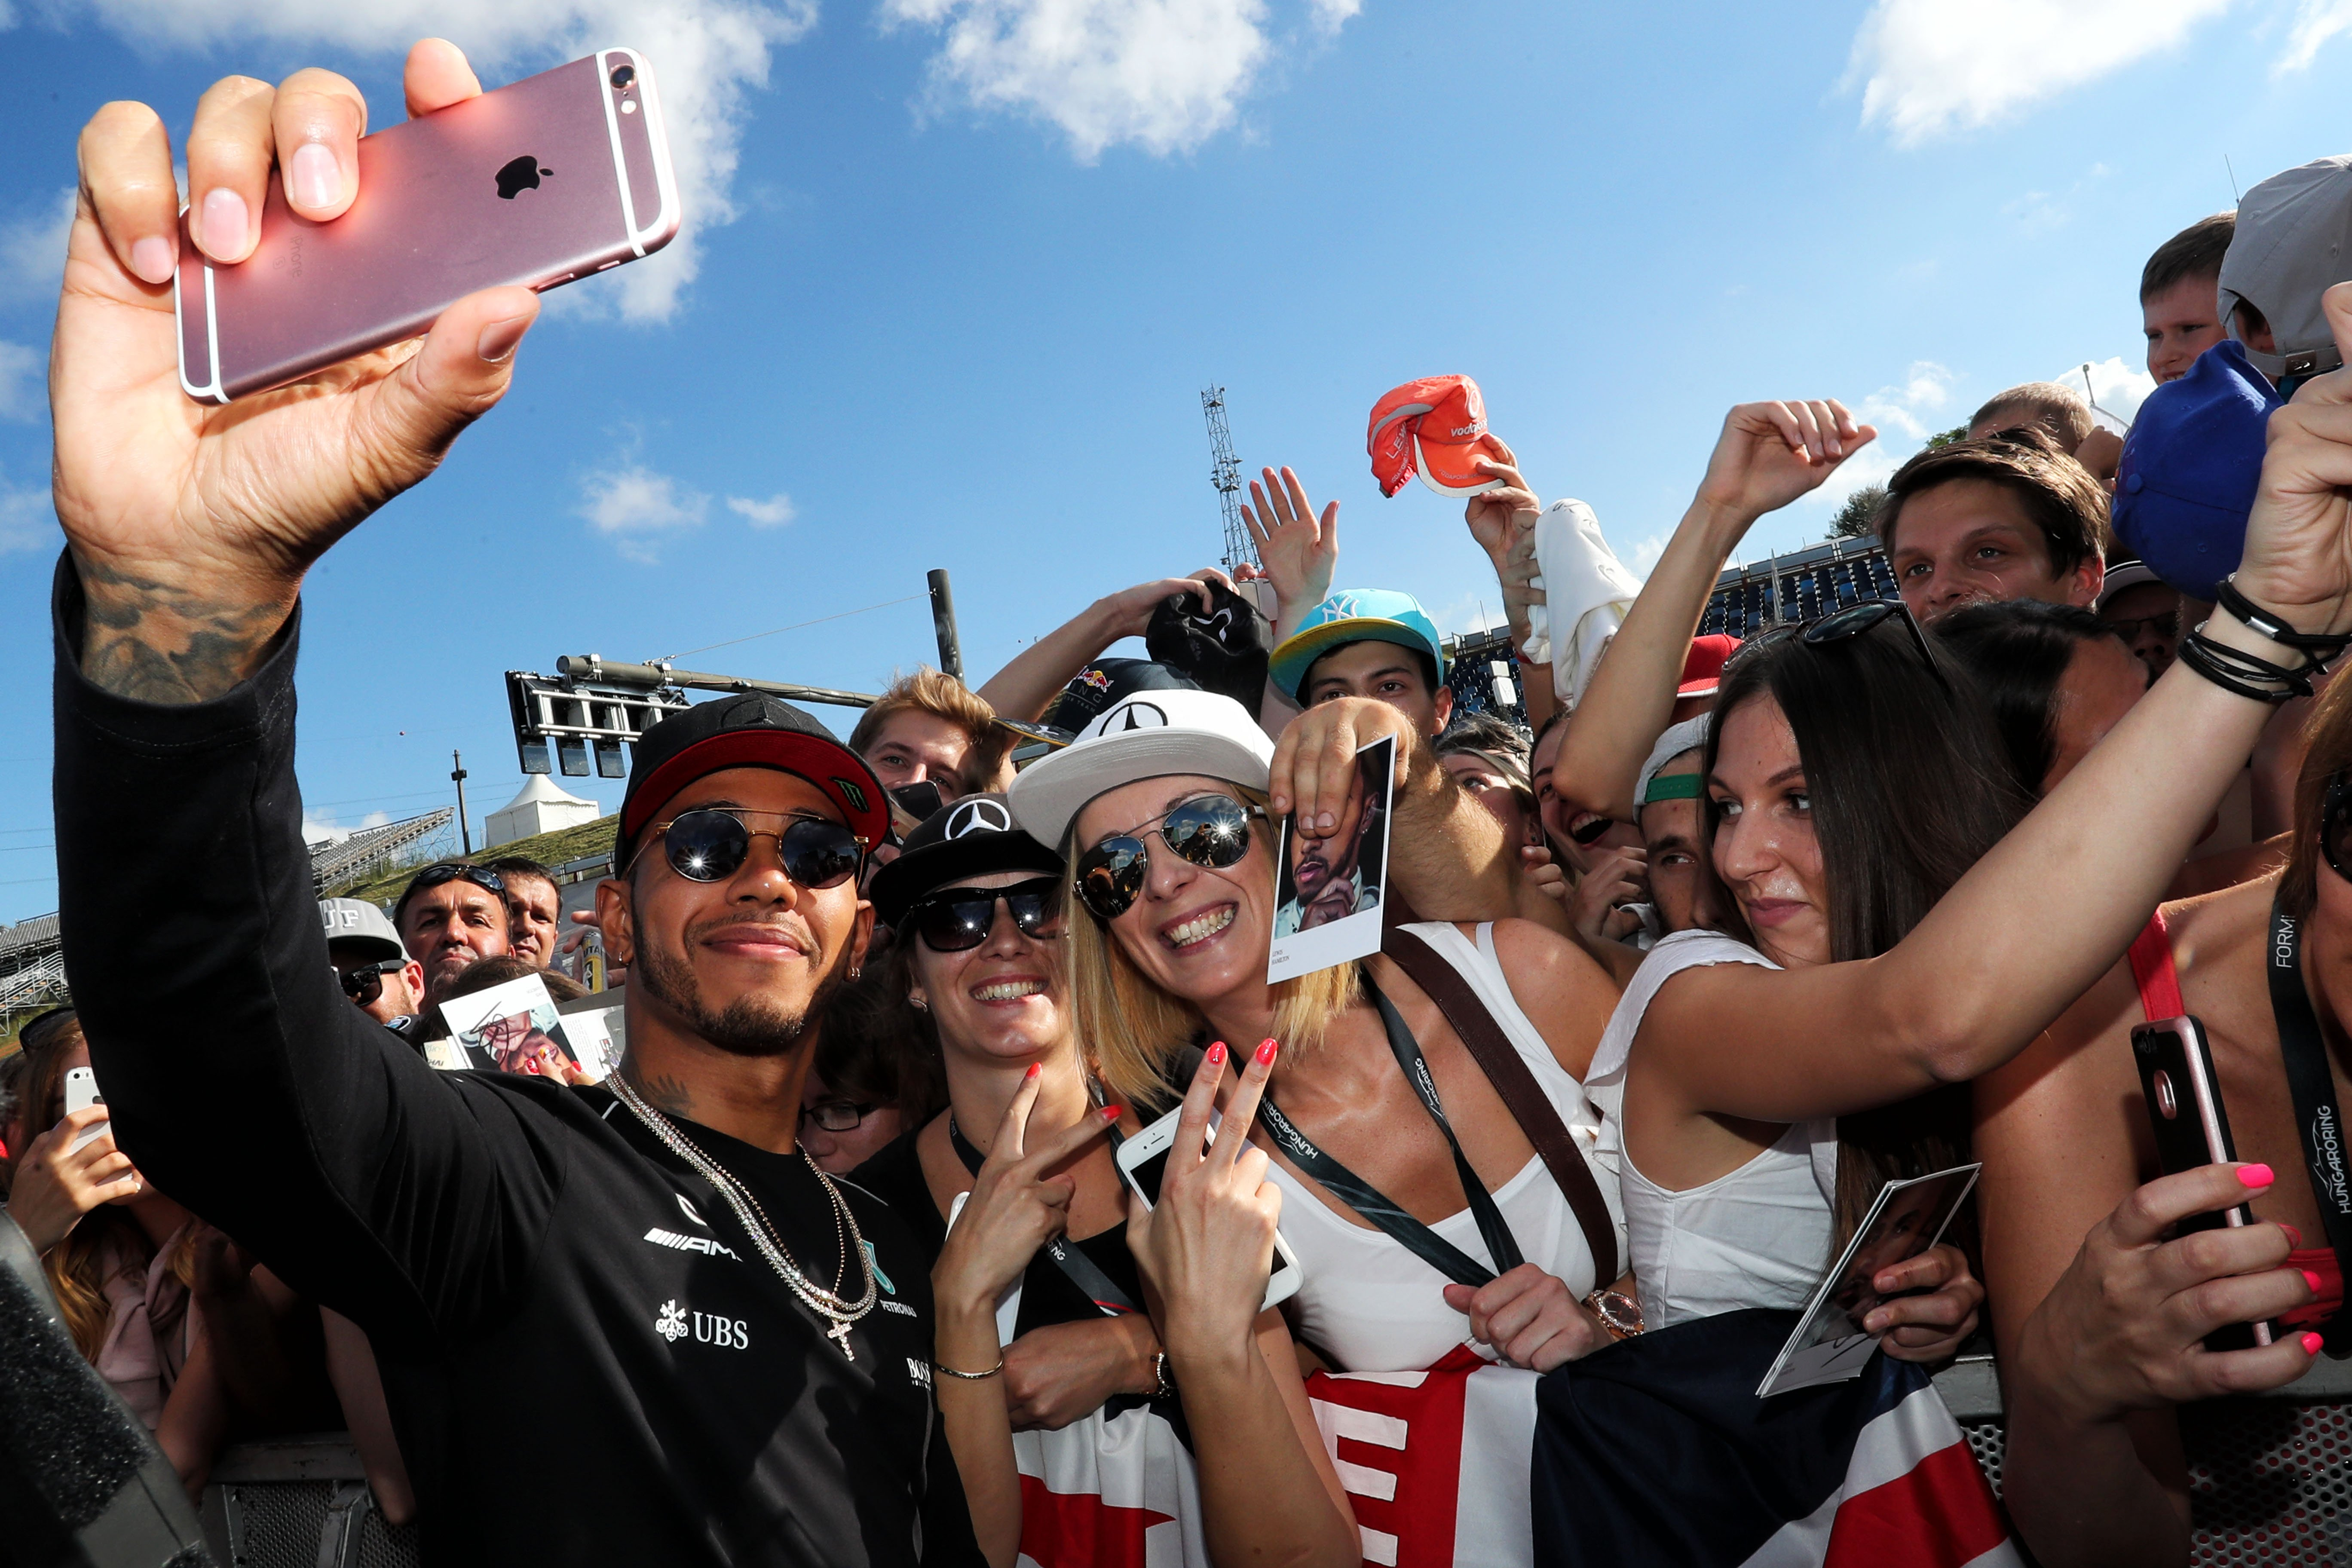 Formula One World Championship 2017, Round 11, Hungarian Grand Prix, Budapest, Hungary, Thursday 27 July 2017 – Lewis Hamilton (GBR) Mercedes AMG F1 with fans.